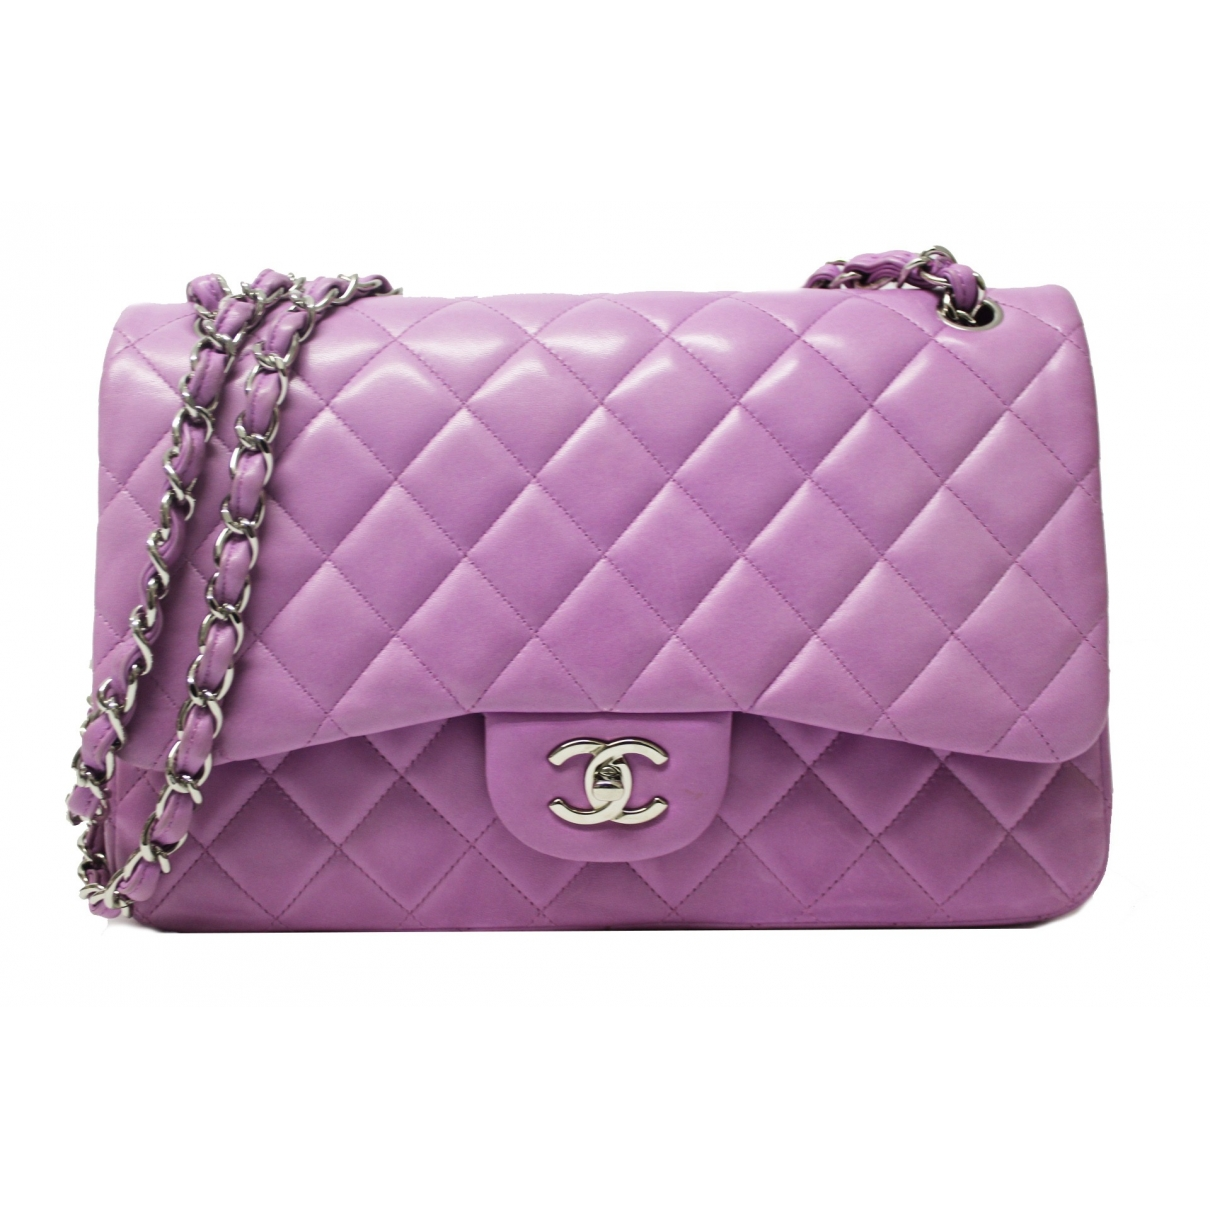 Chanel 2.55 Pink Leather handbag for Women \N